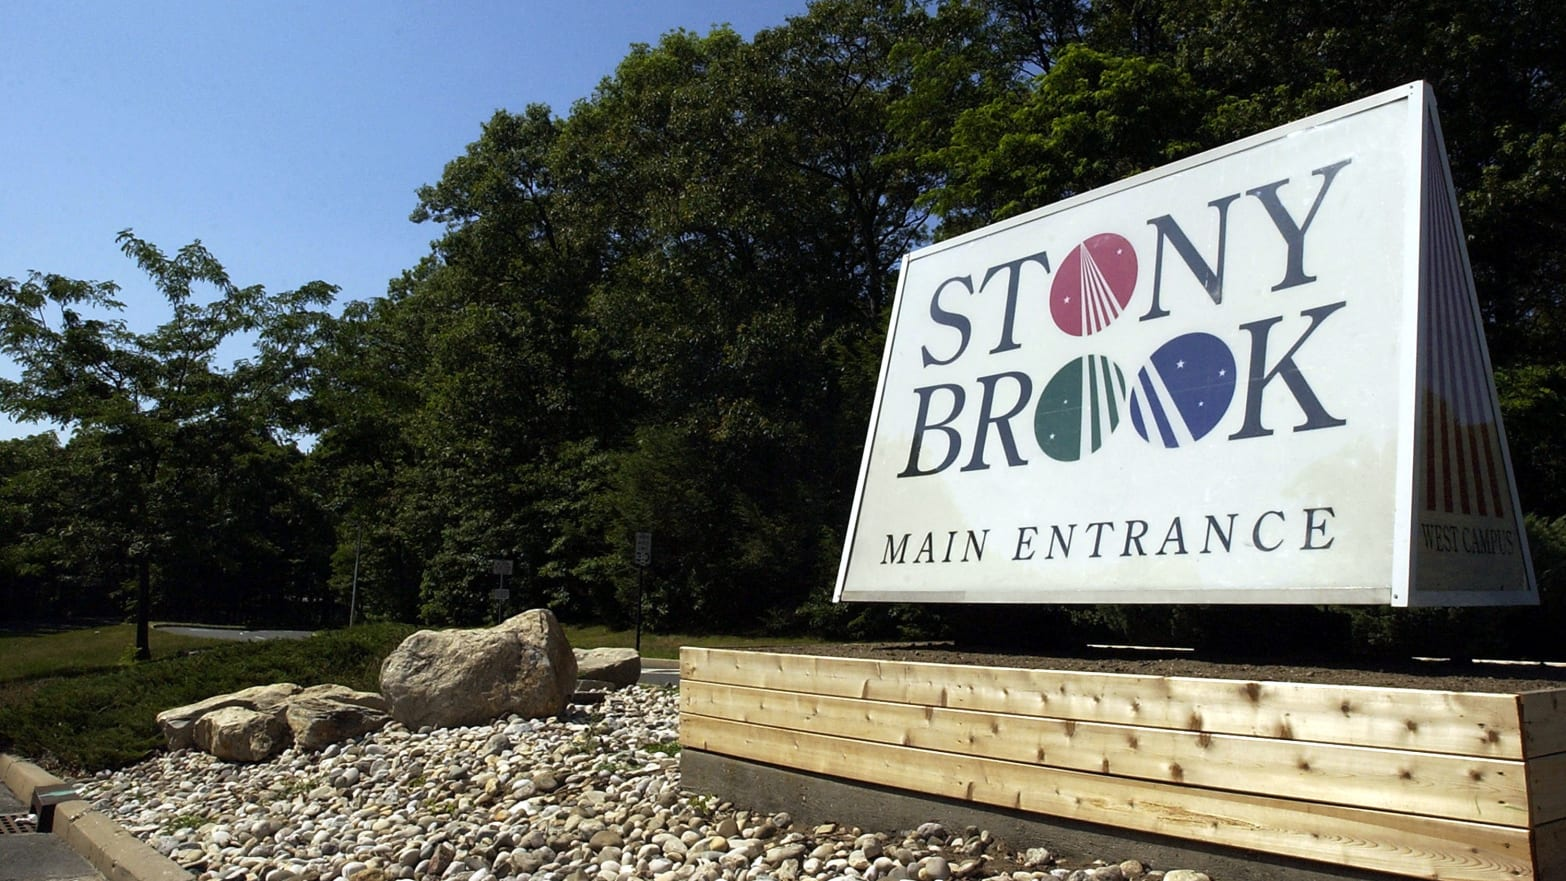 Stony Brook Professor Geoffrey Girnun Stole More Than $200,000 in Cancer Research Funds, Prosecutors Say